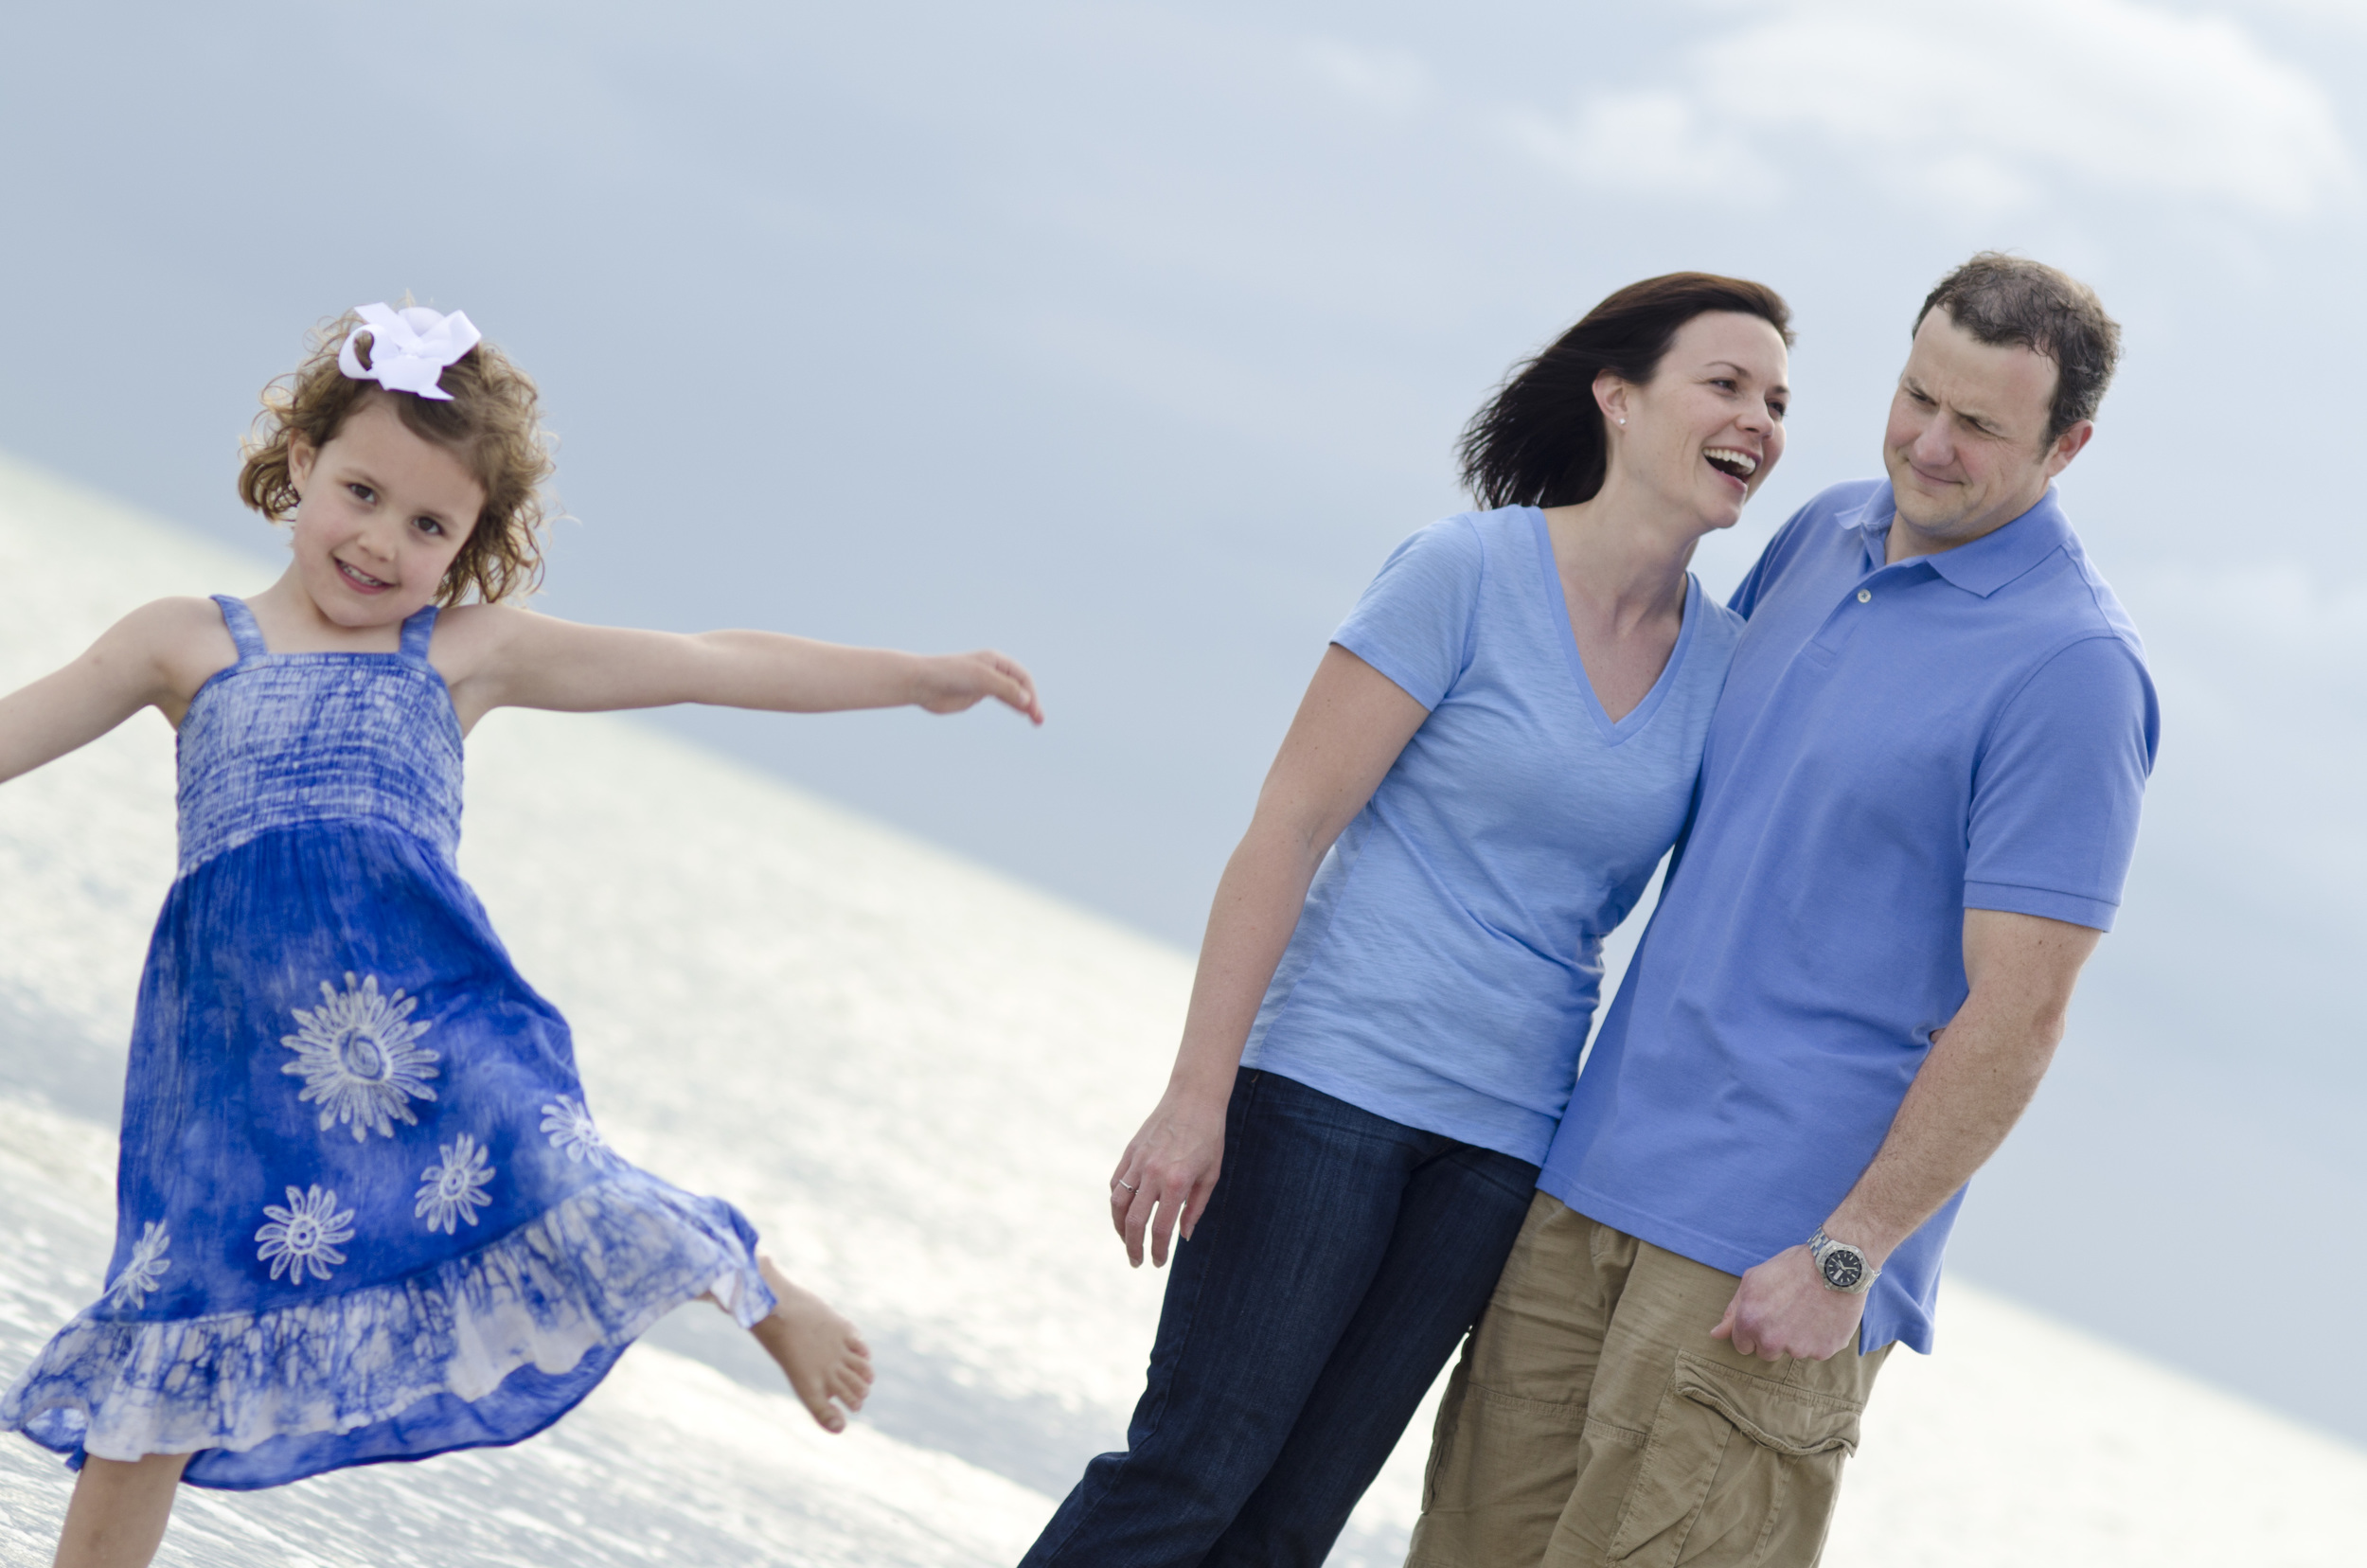 Family Beach Photographer - St. Petersburg, FL